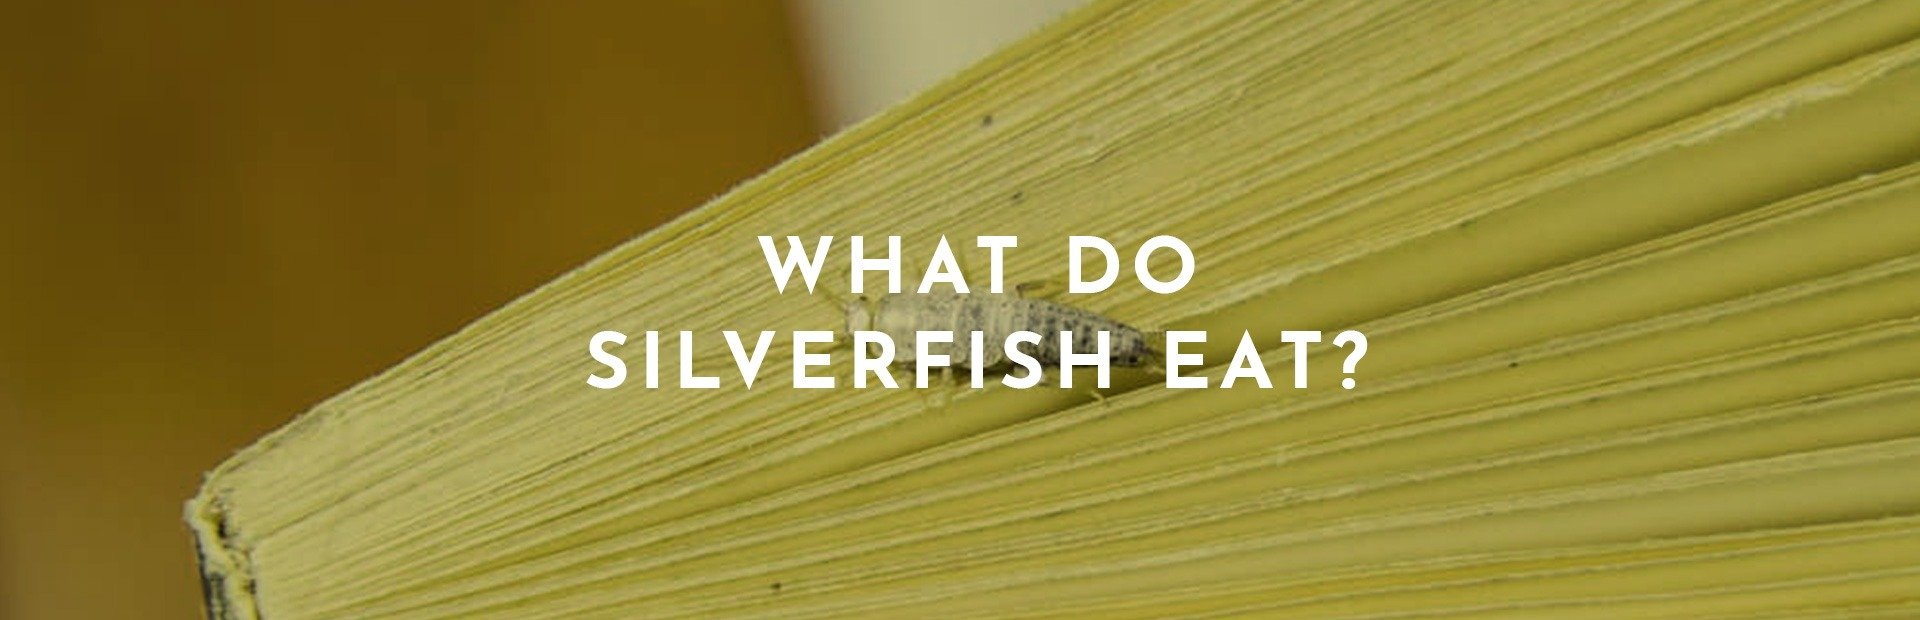 What Do Silverfish Eat? Information on Their Diet and What Attracts Them in Your Home.